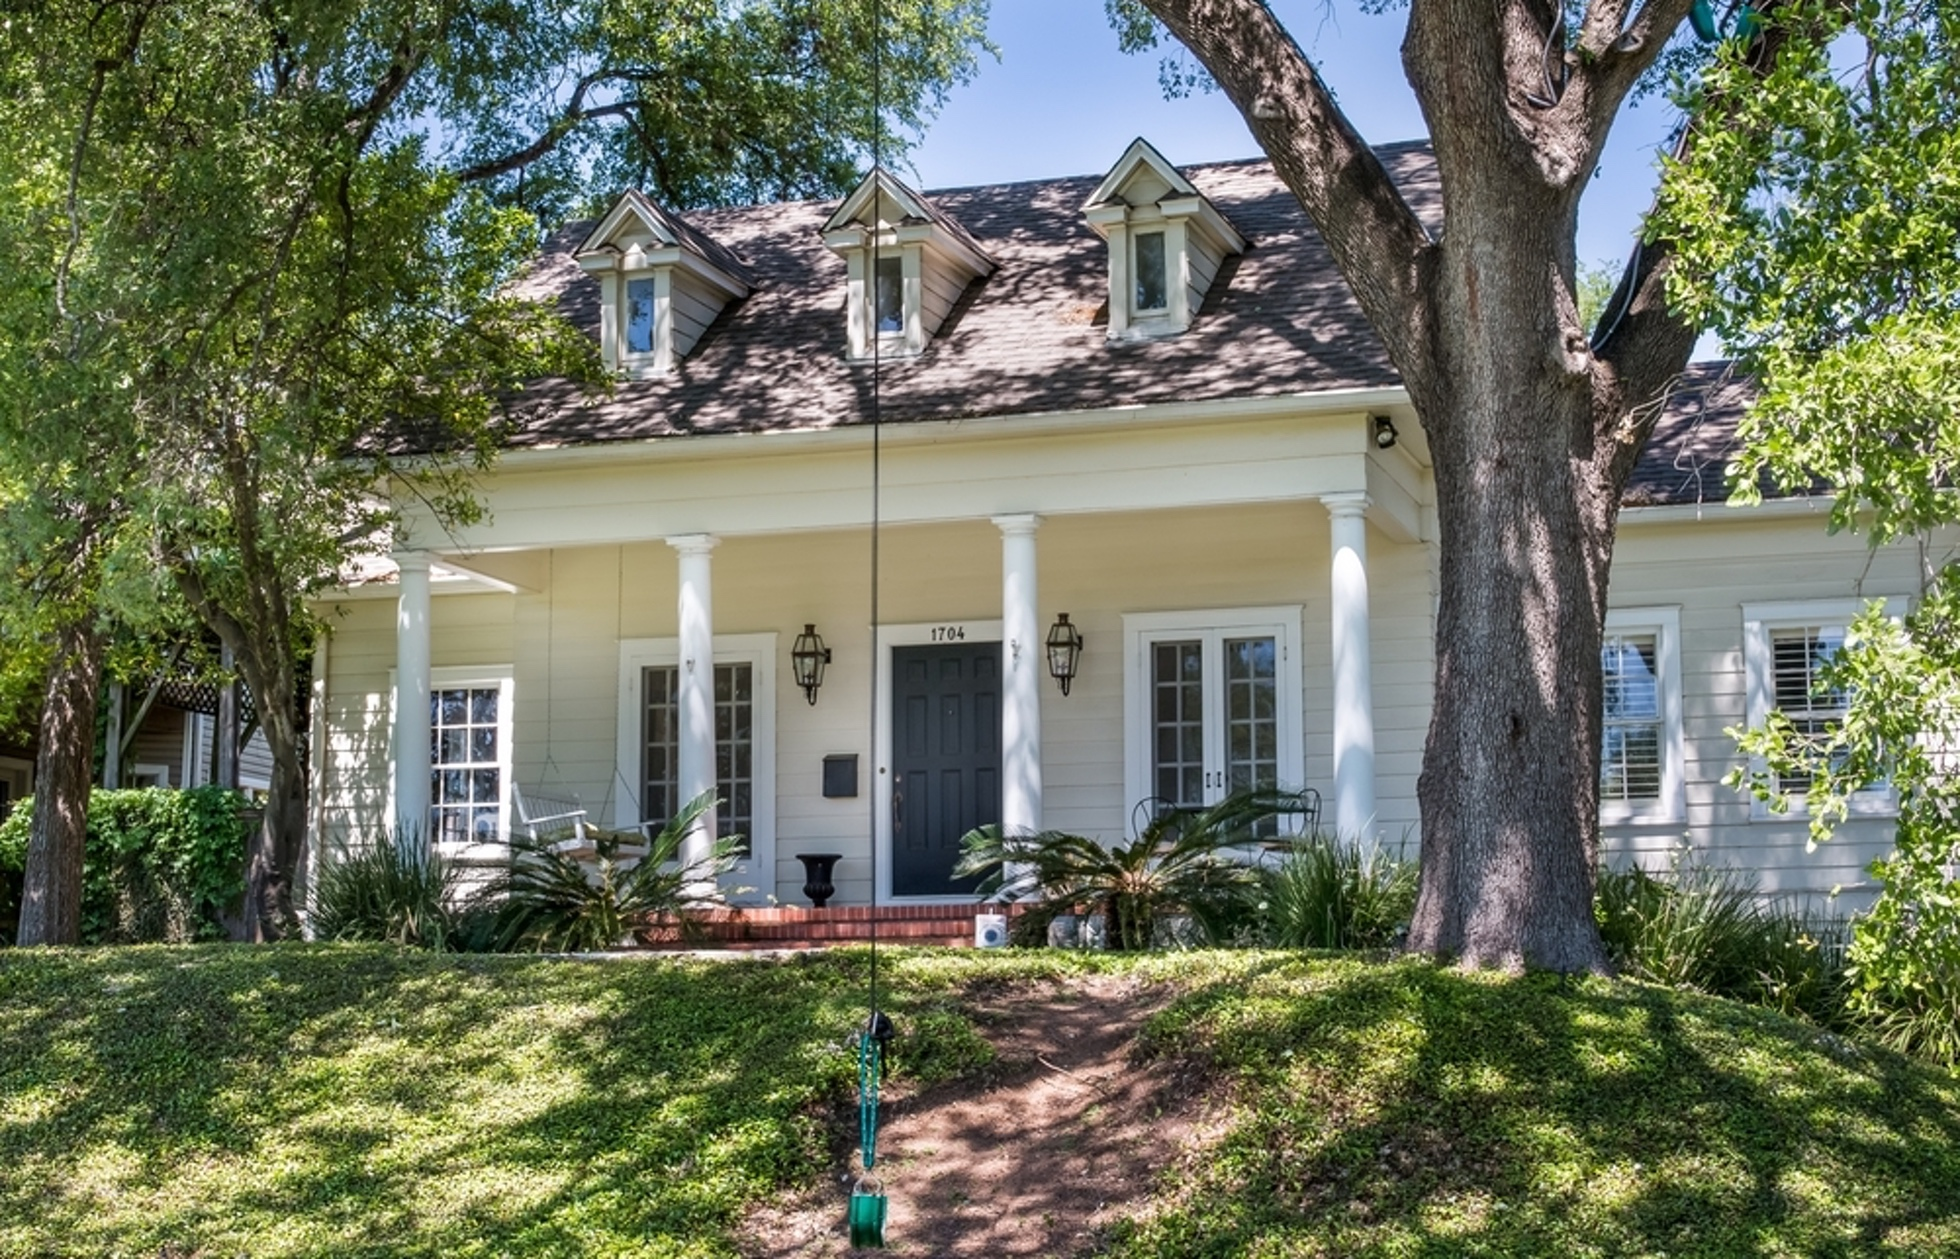 Cost to build a new house in austin - After A Hefty Price Chop This Old West Austin Home Is Now Asking 1 7m